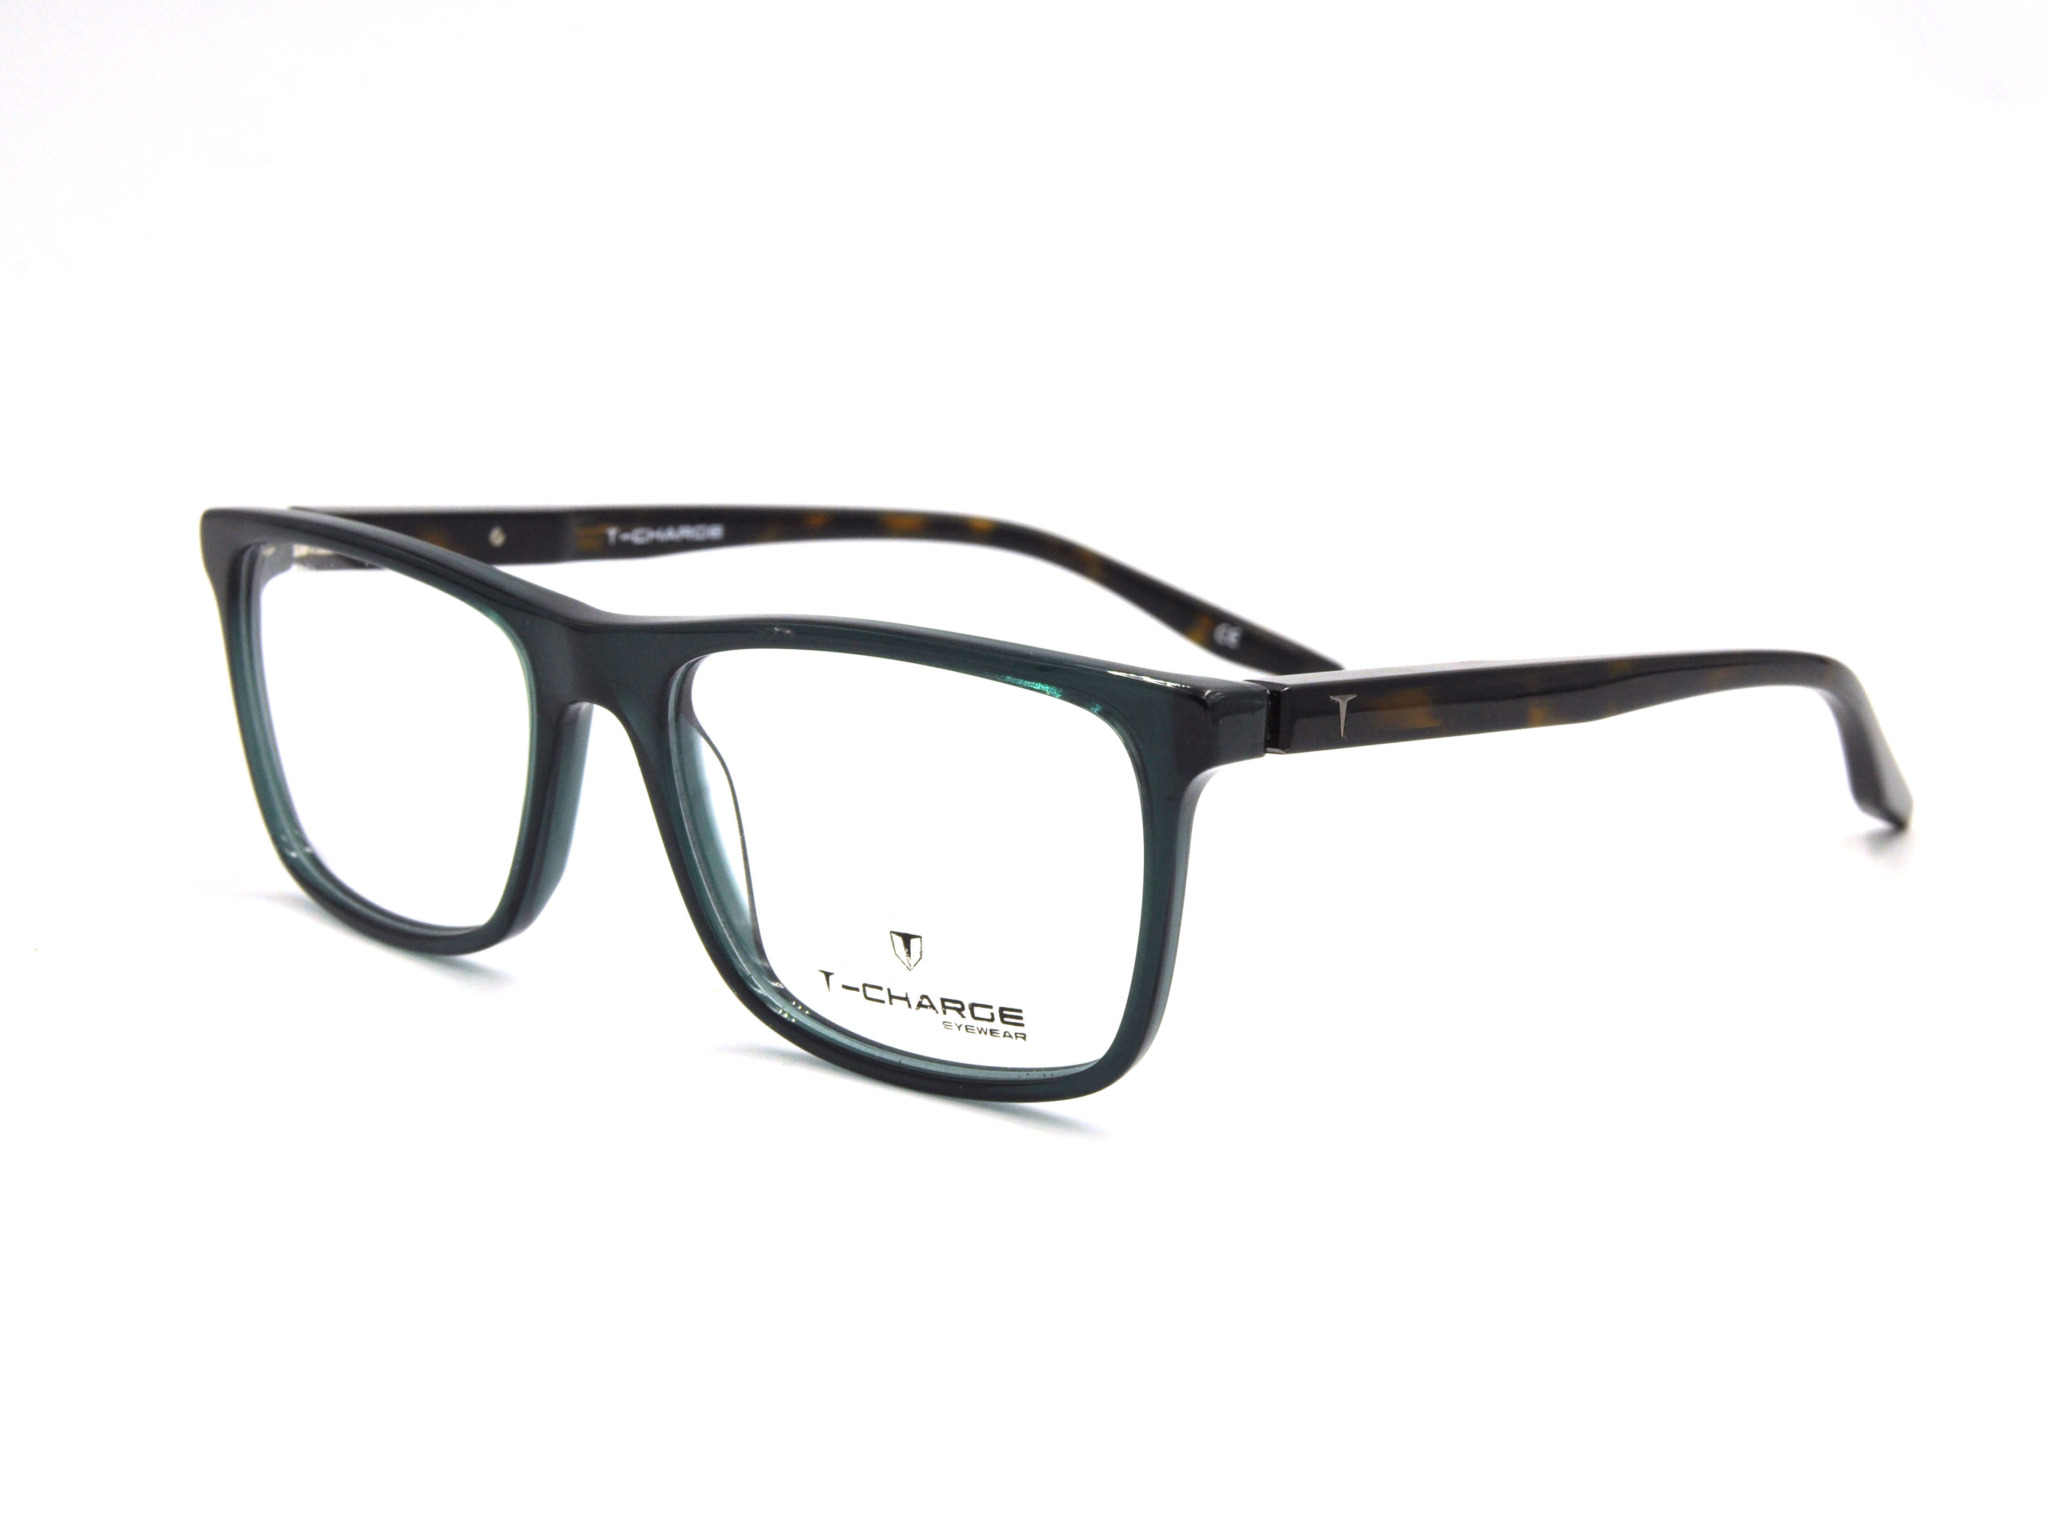 T CHARGE T6098 T02 Prescription Glasses 2020